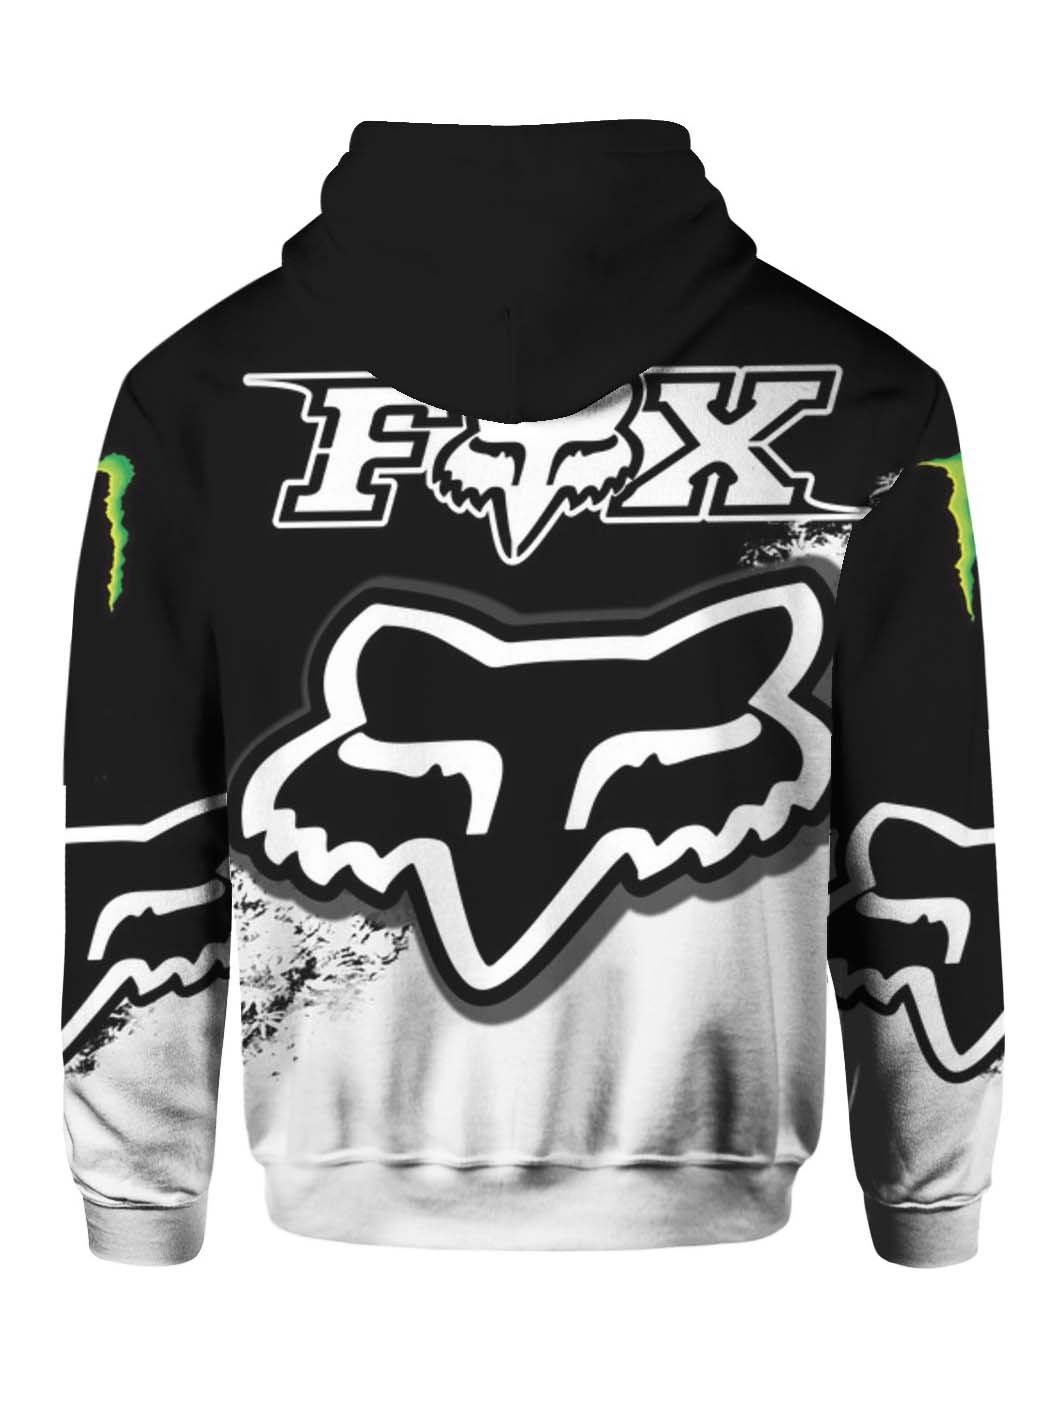 monster energy green and fox racing full over printed hoodie 1